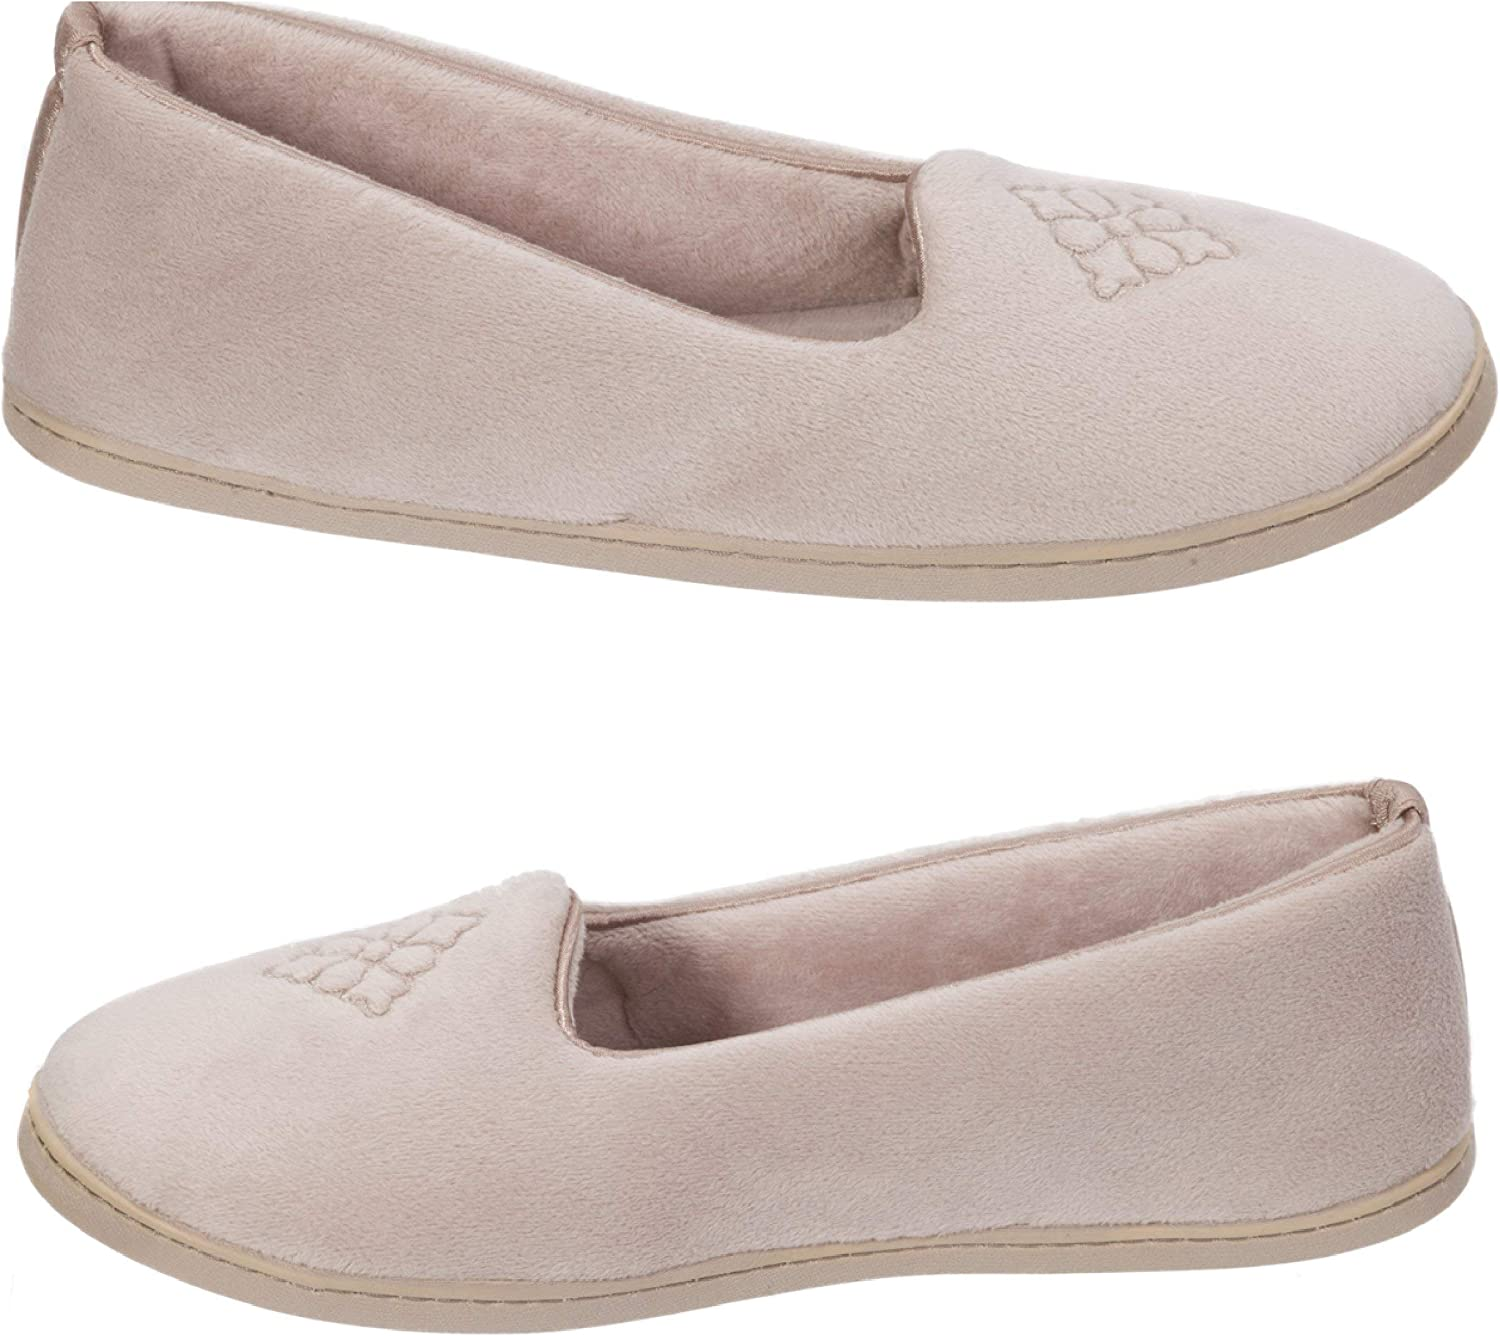 Dearfoams Women's Micro Velour Embroidered Closed Back Slippers